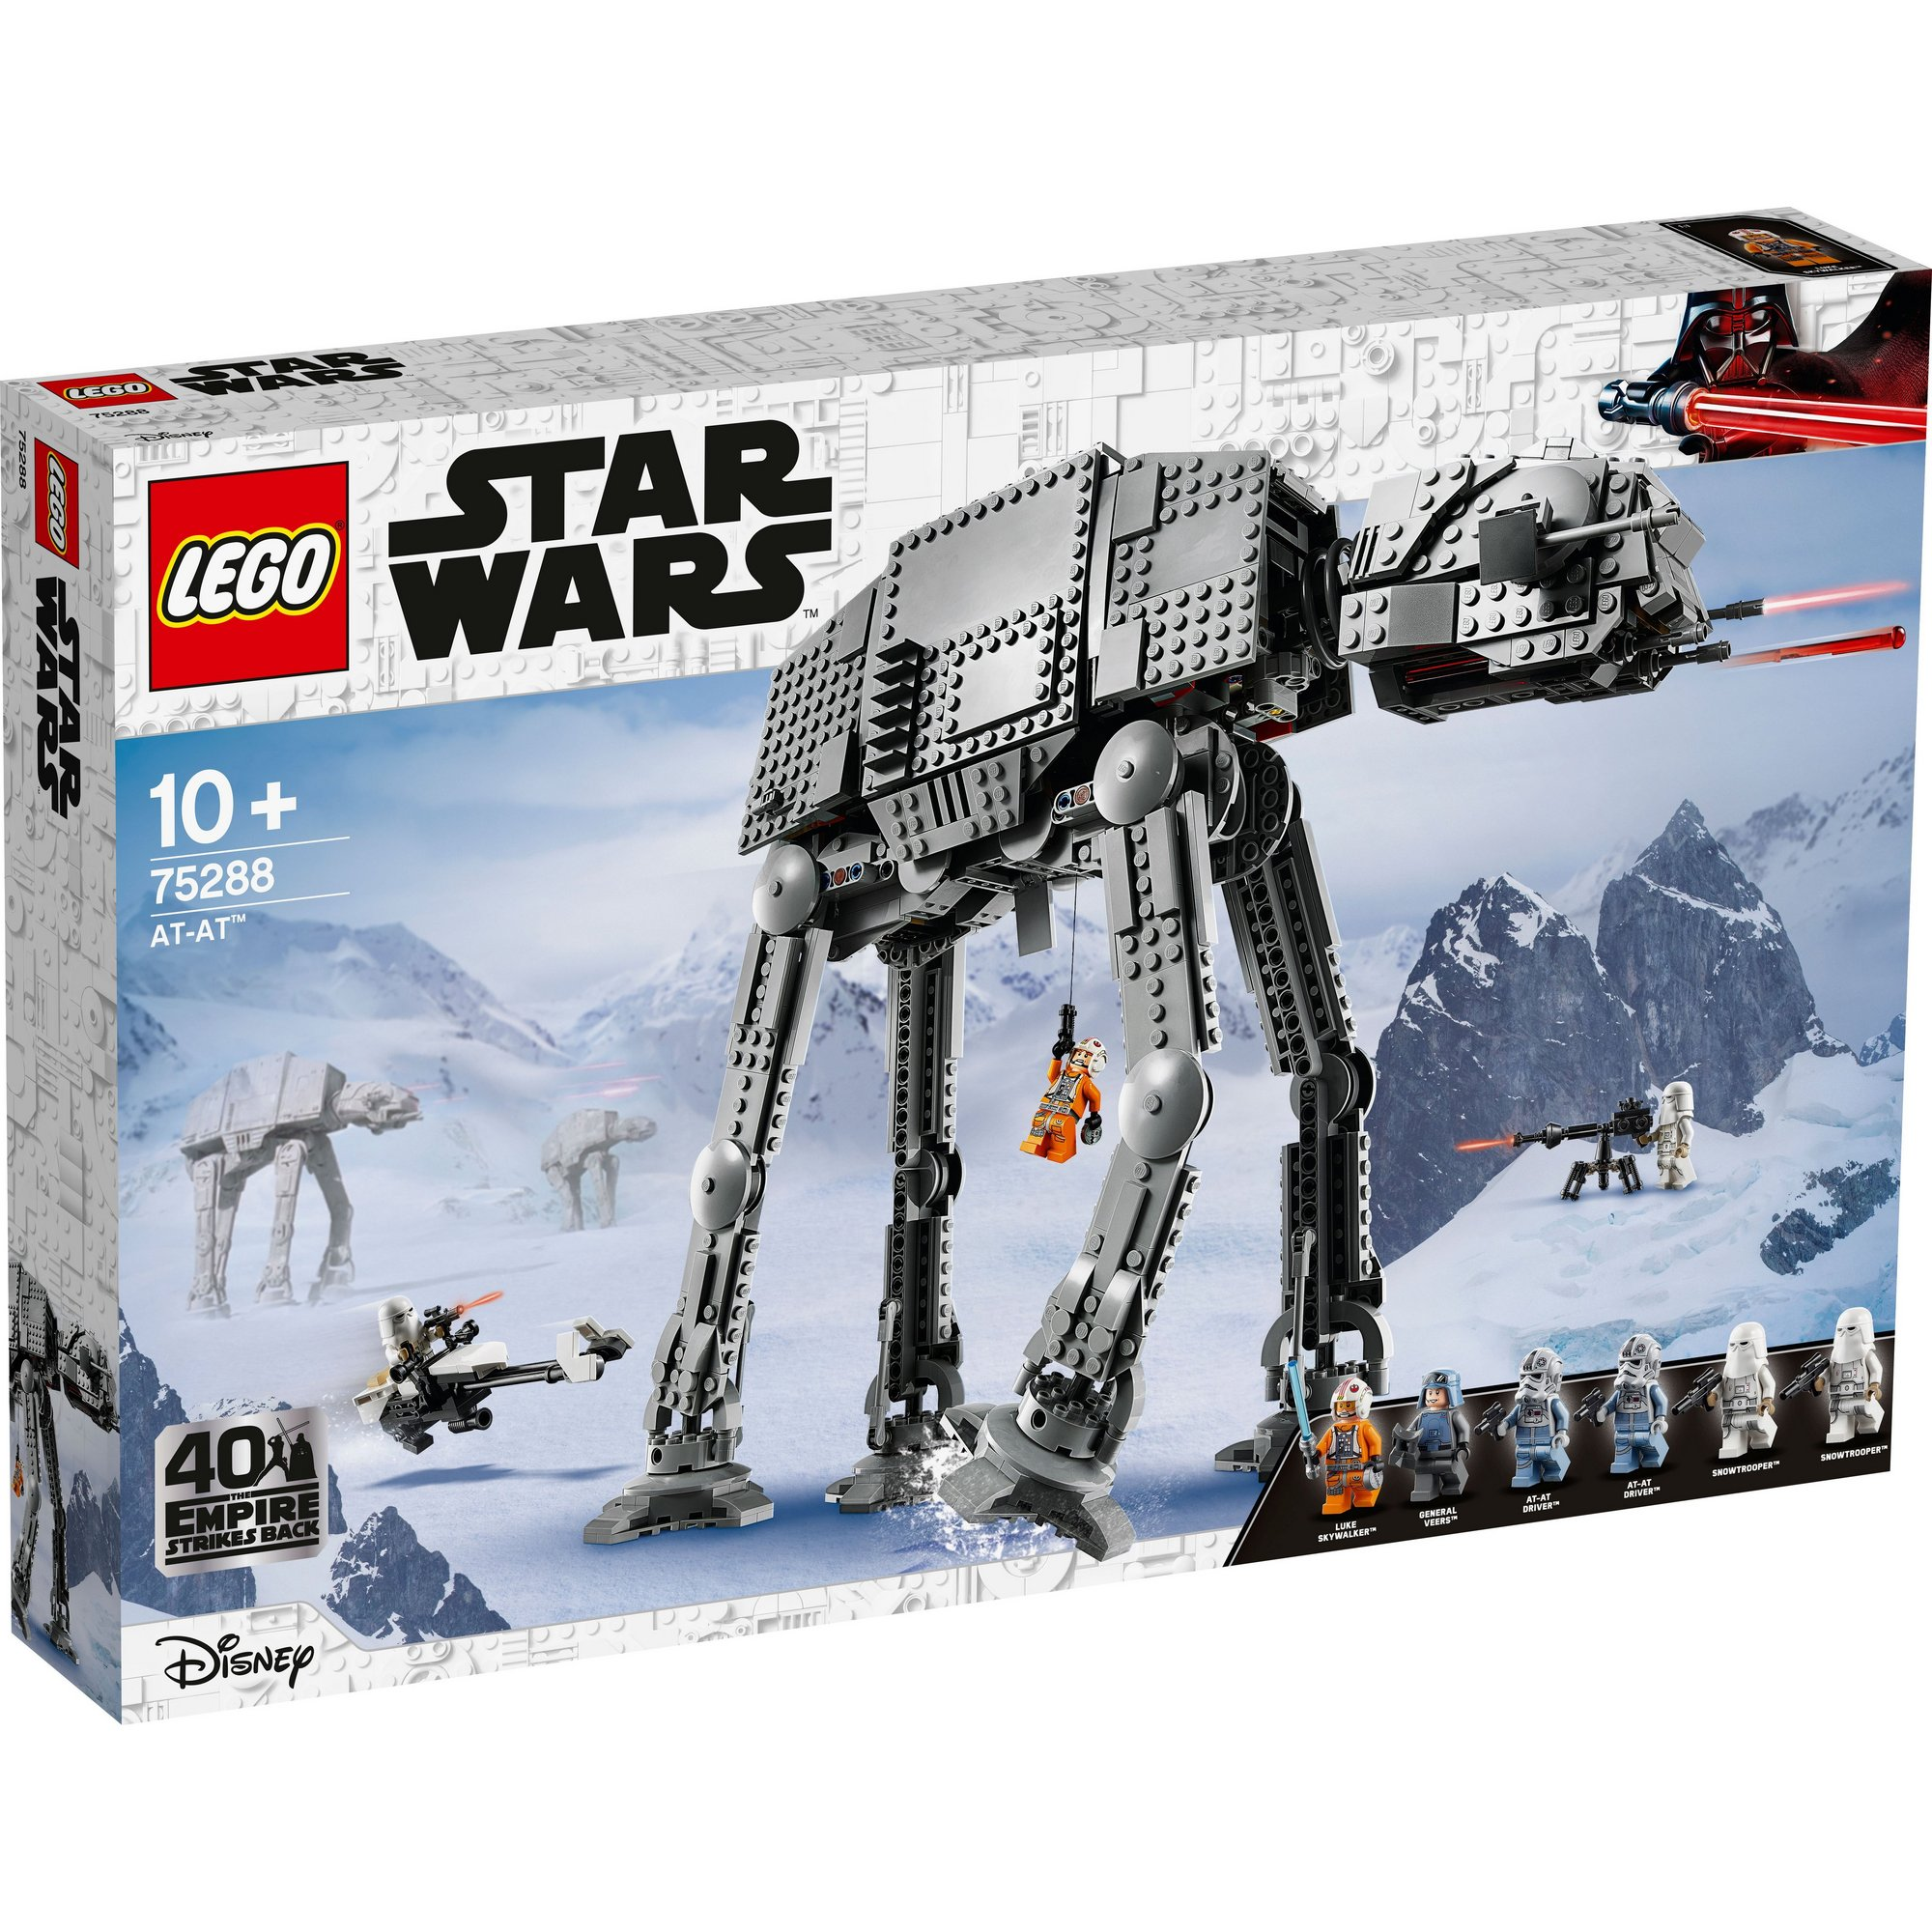 Image of LEGO Star Wars AT-AT